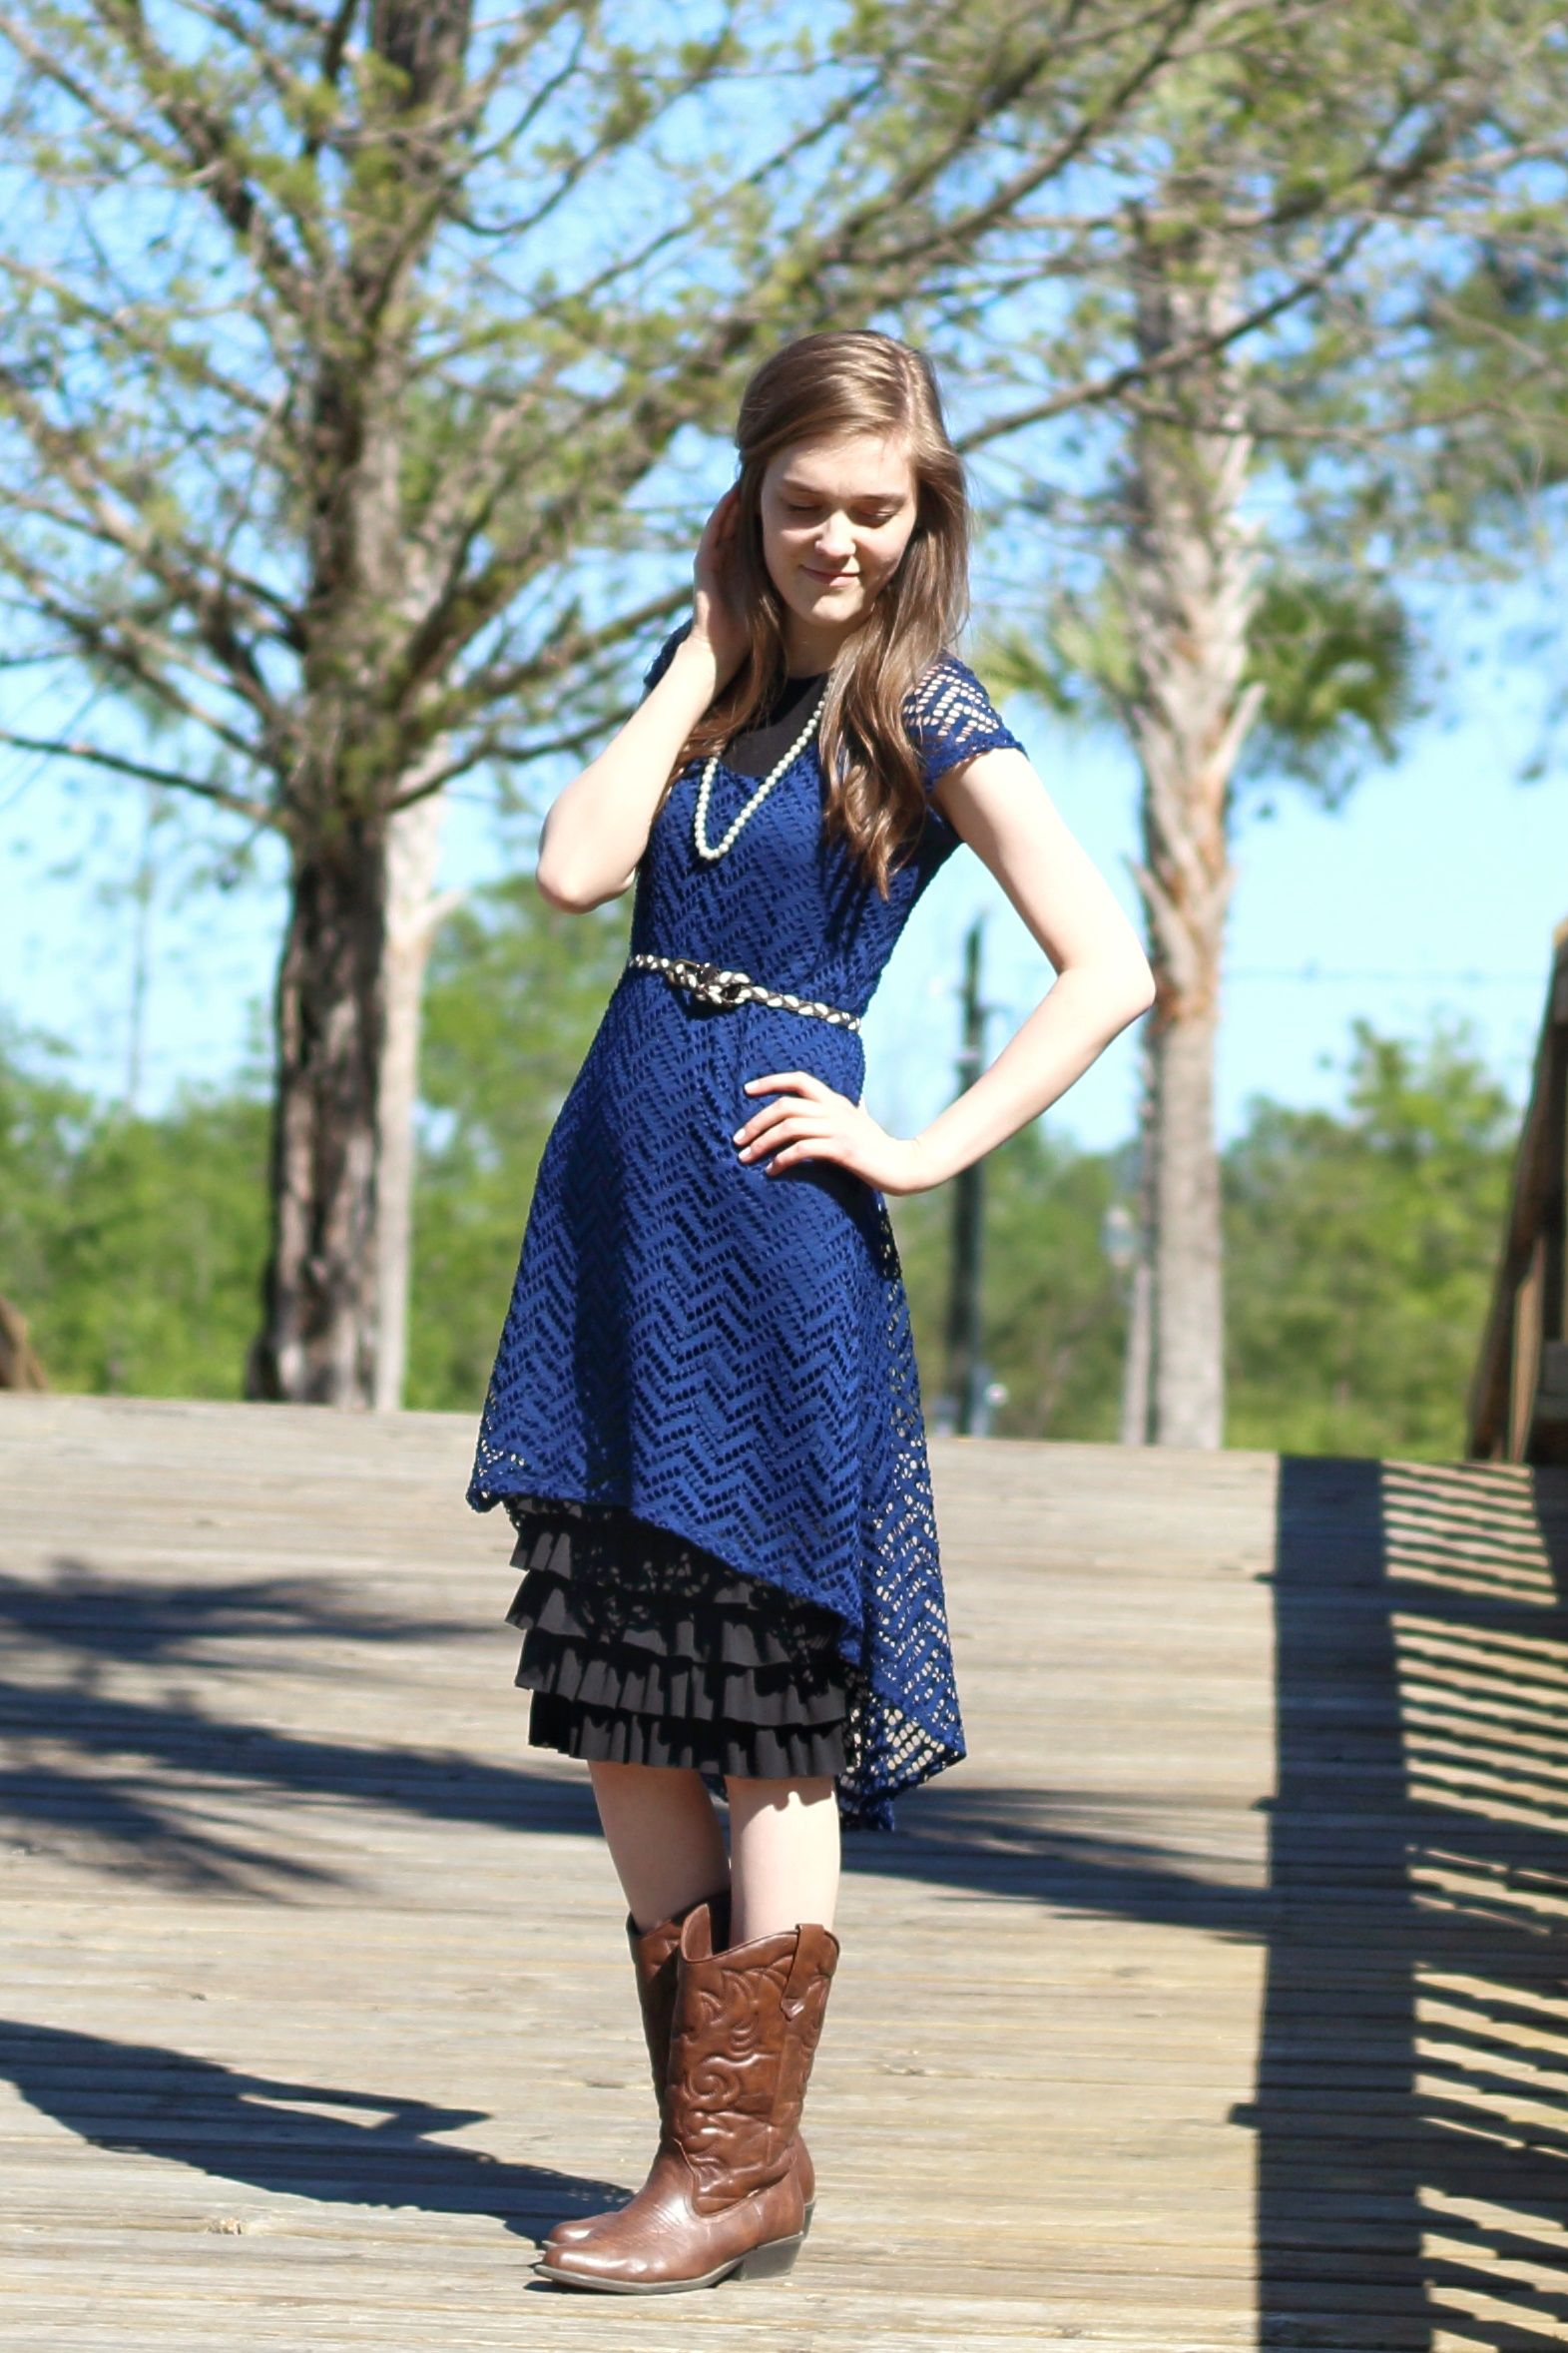 Modest Dressy Outfit Idea For Church Navy Lace Dress Black Skirt Extender Cowboy Boots Spring Summer Style Navy Lace Dress Dressy Outfits Lace Dress Black [ 2357 x 1571 Pixel ]